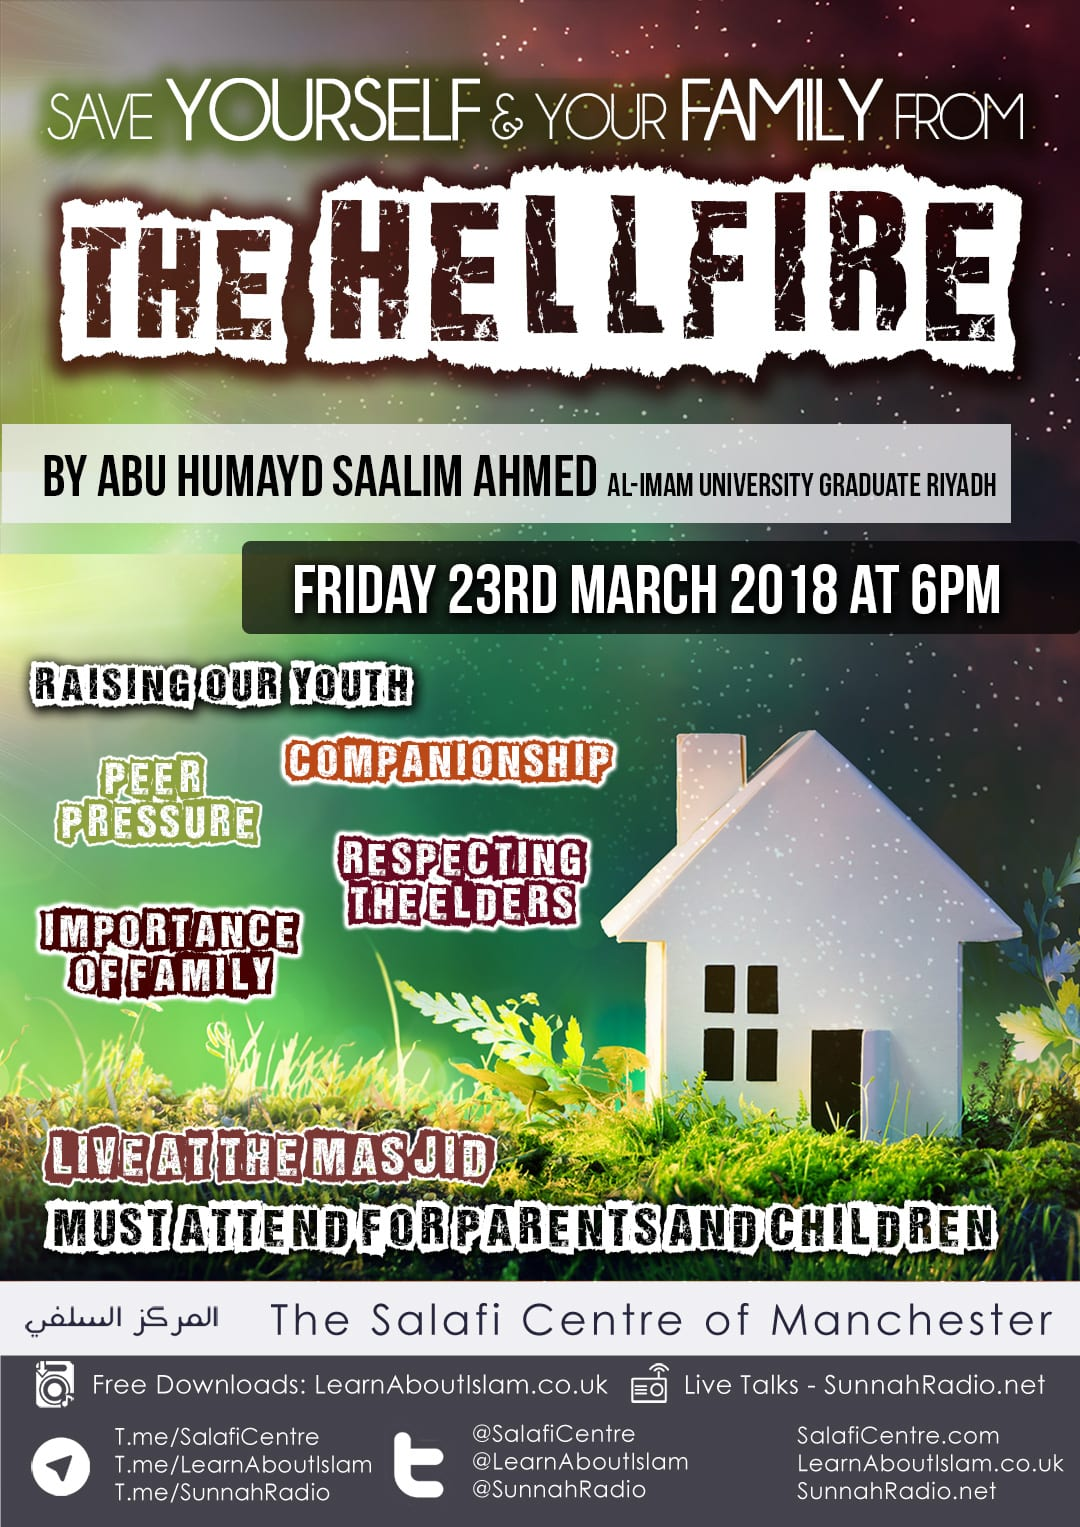 Live and Exclusive Parent & Child Talk! – Save Yourself and Your Family from The HellFire